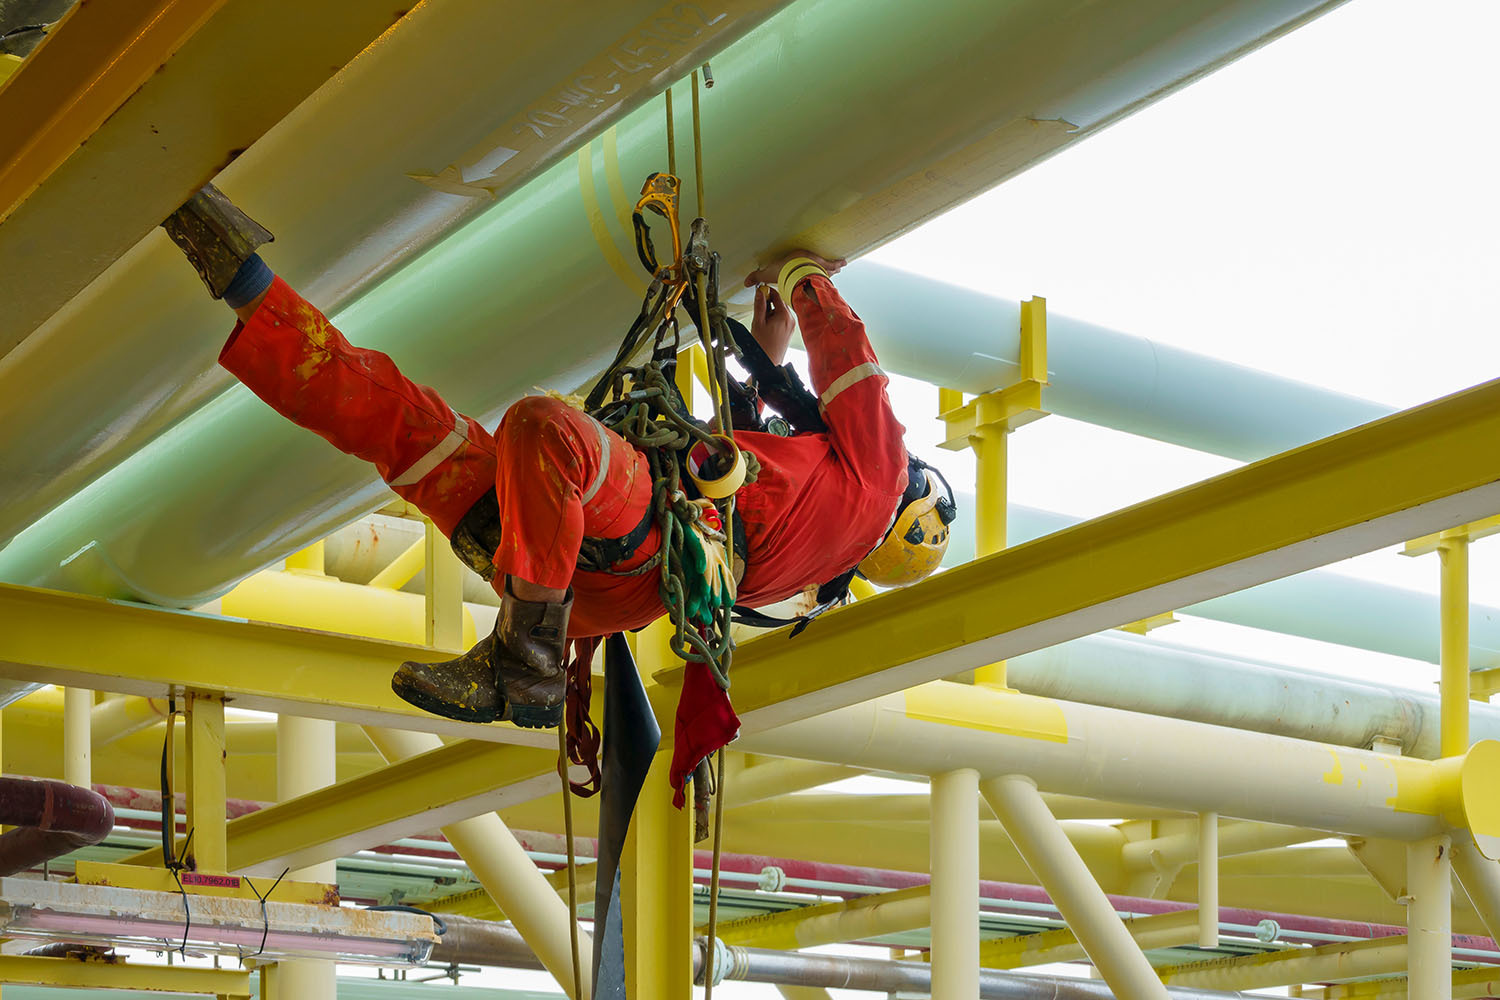 Maintenance engineer on an oil rig